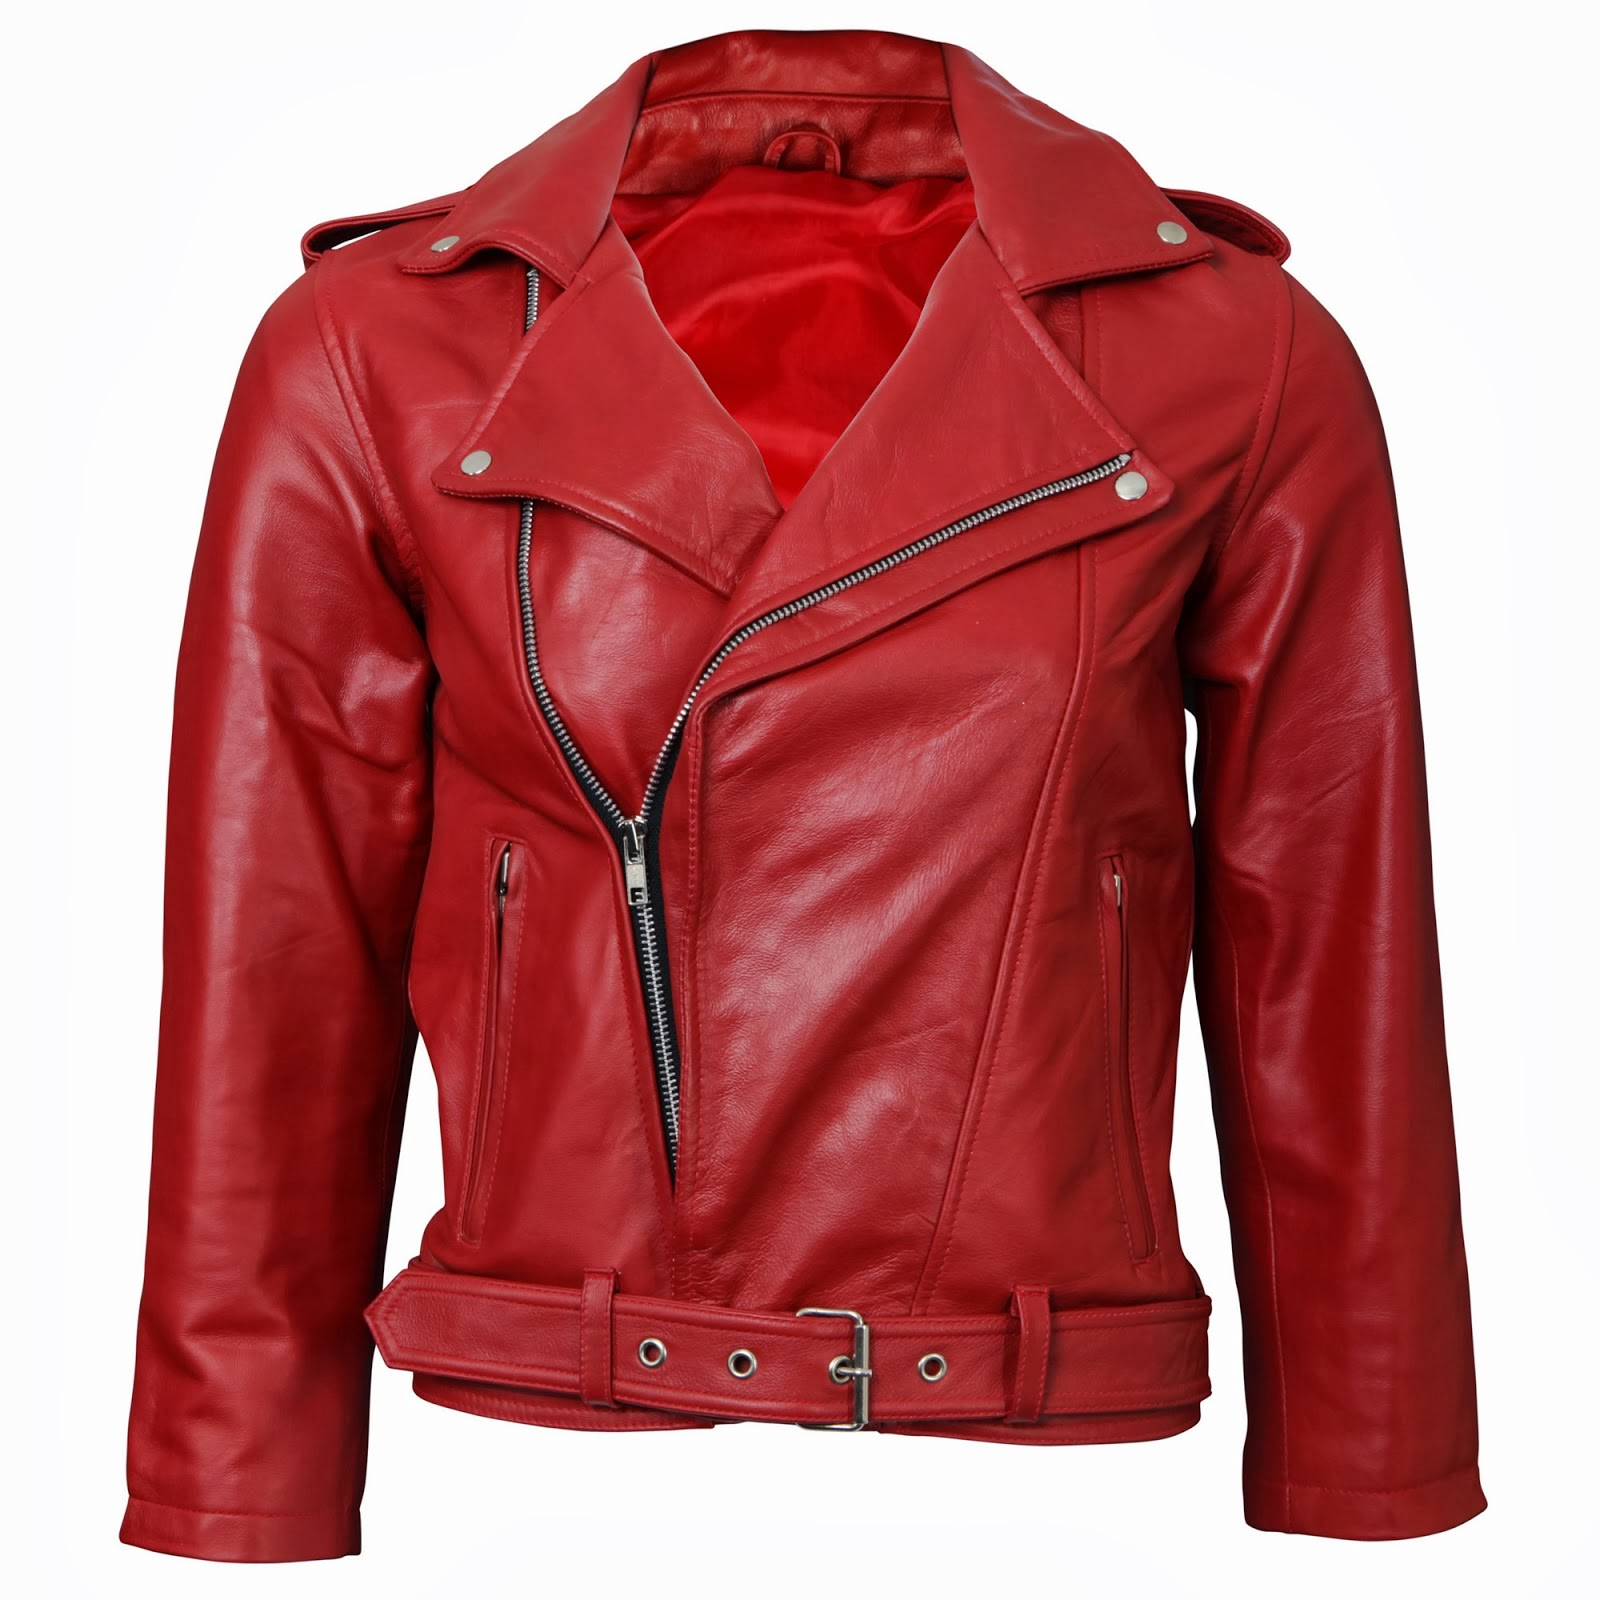 You searched for: red leather jacket! Etsy is the home to thousands of handmade, vintage, and one-of-a-kind products and gifts related to your search. No matter what you're looking for or where you are in the world, our global marketplace of sellers can help you find unique and affordable options. Let's get started!